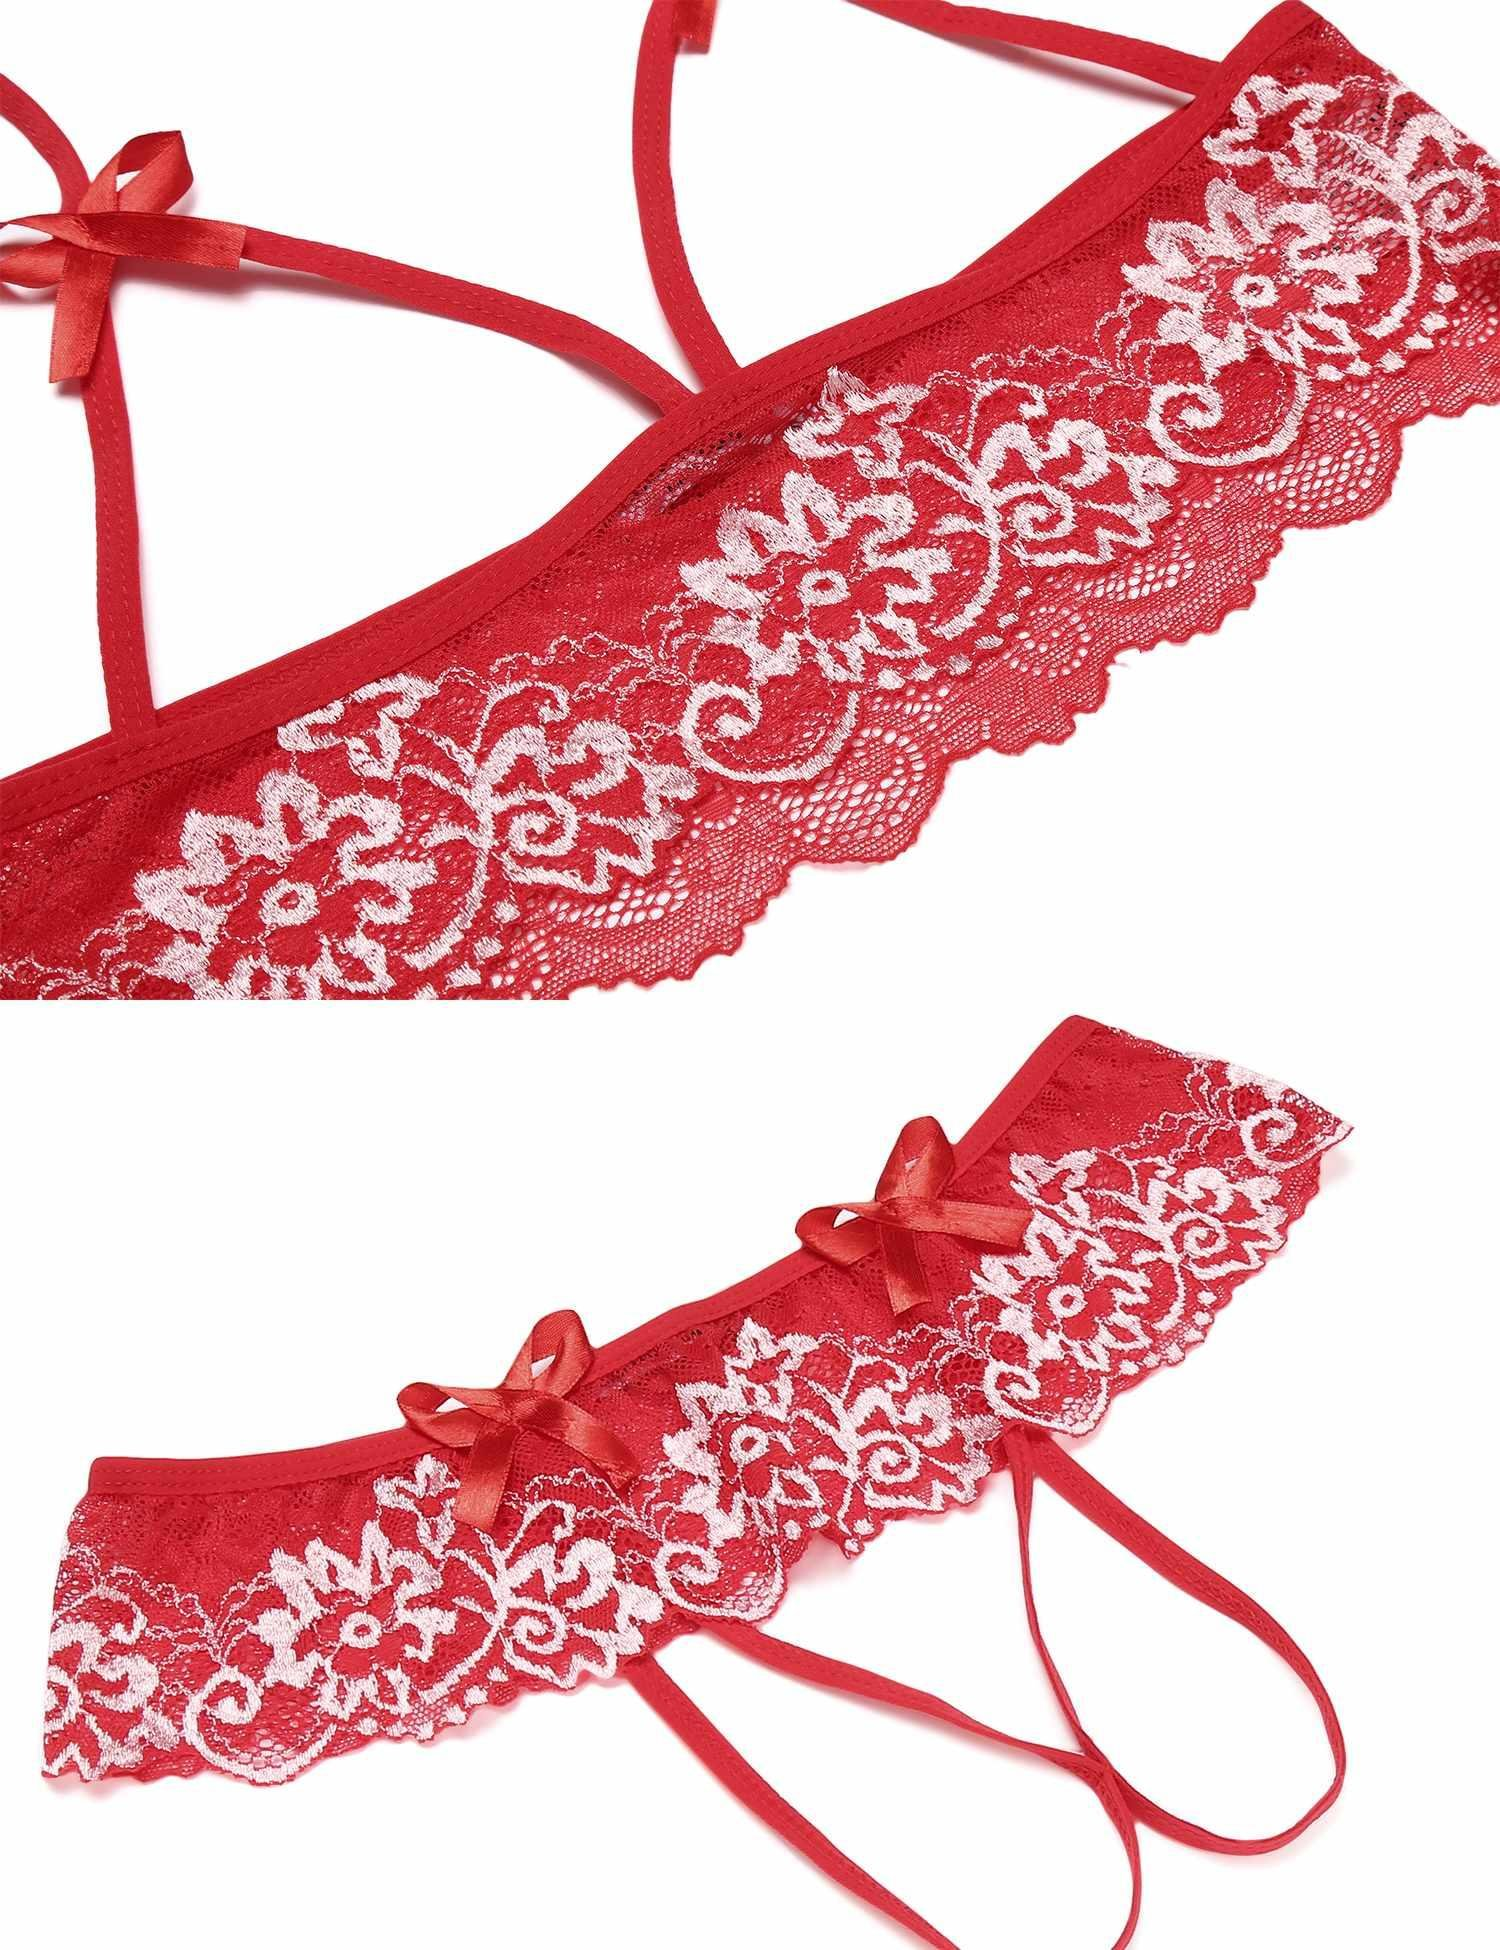 MAXMODA Women's Sexy Strappy Lingerie Set Halter Lace Babydoll Red M by MAXMODA (Image #4)